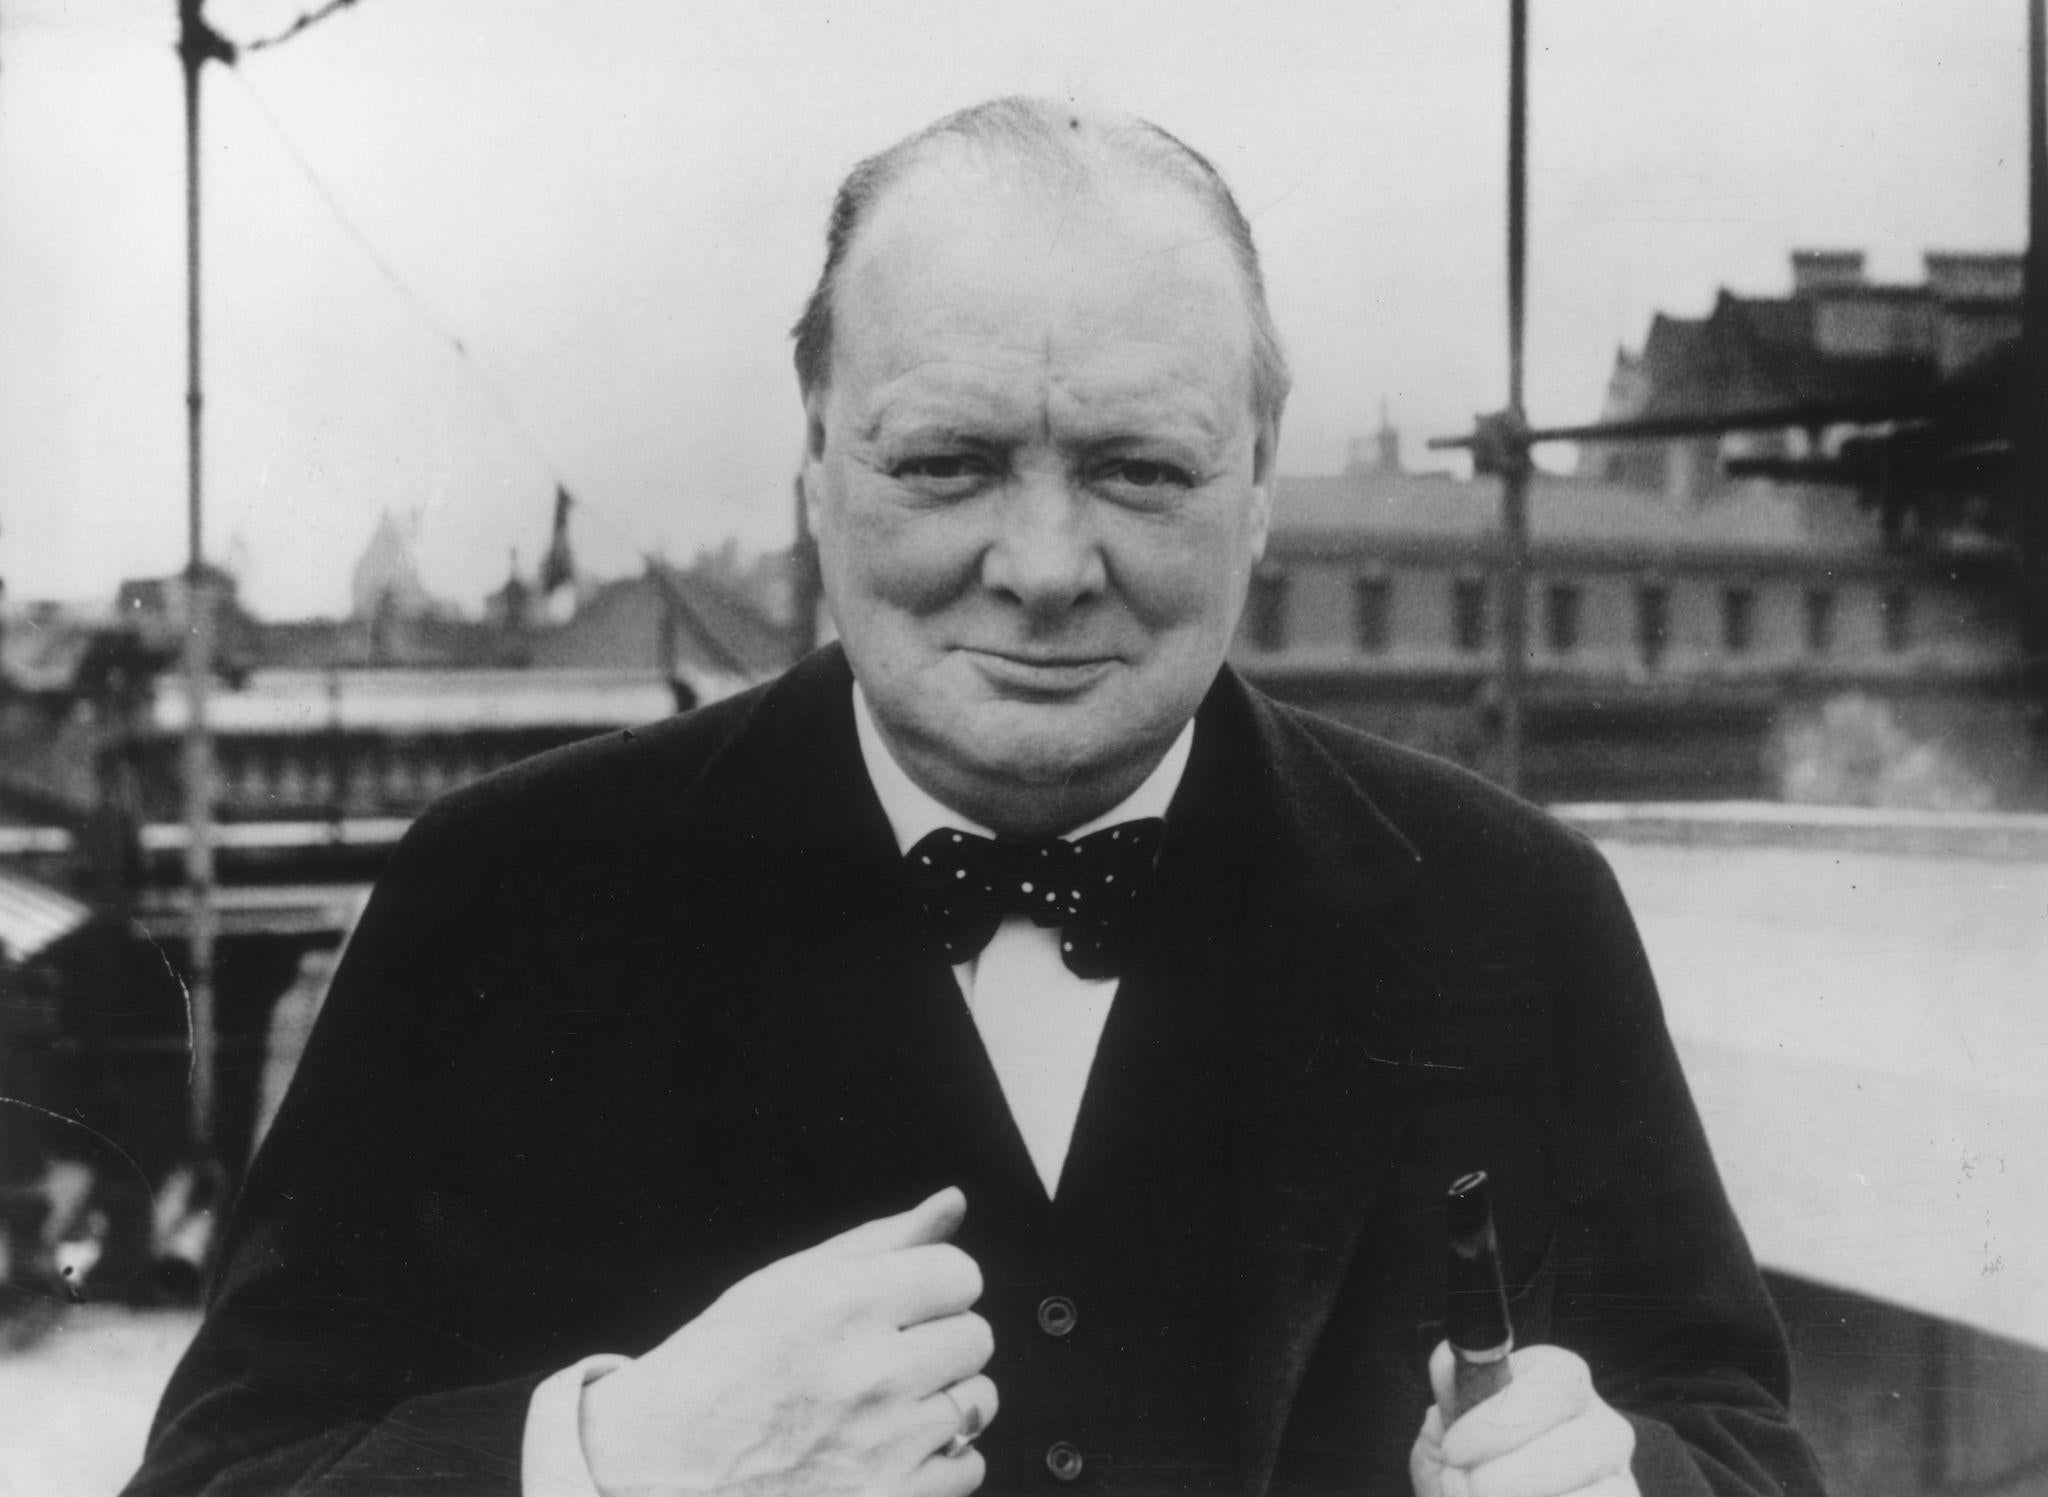 winston churchill s secret essay about existence of aliens winston churchill s secret essay about existence of aliens revealed the independent